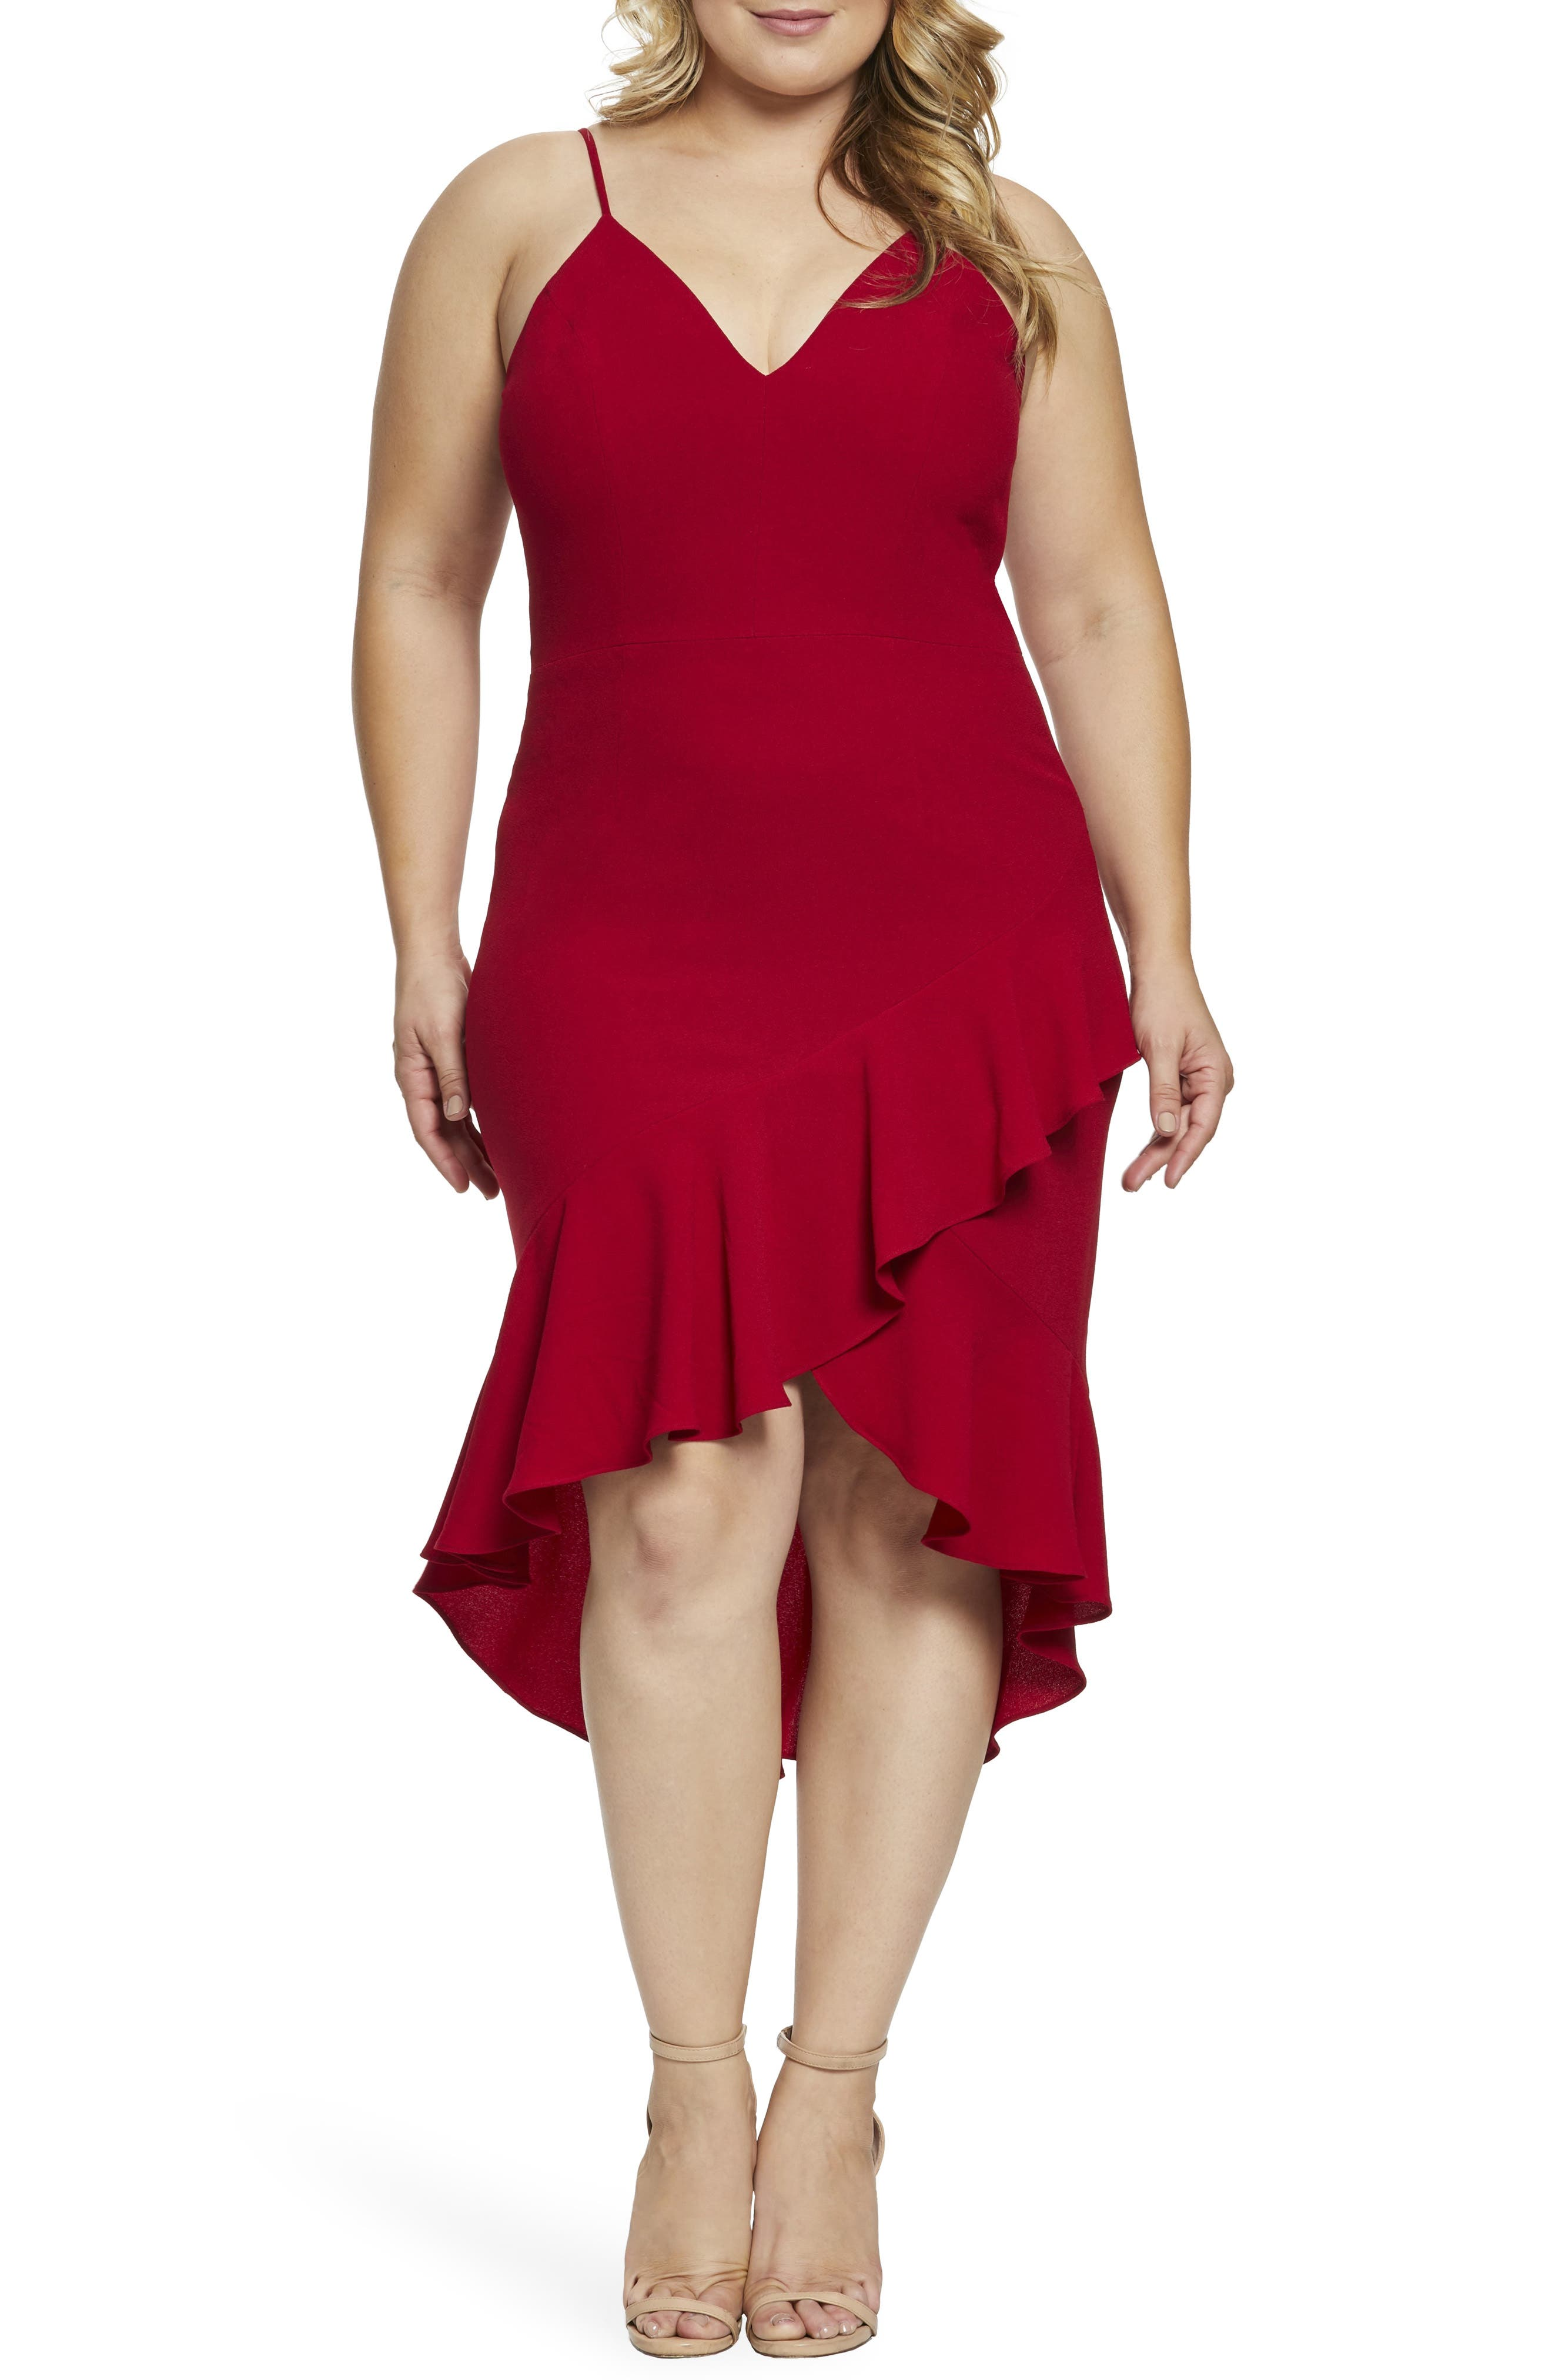 Plus Size Dress The Population Wendy High/low Ruffle Cocktail Dress, Red